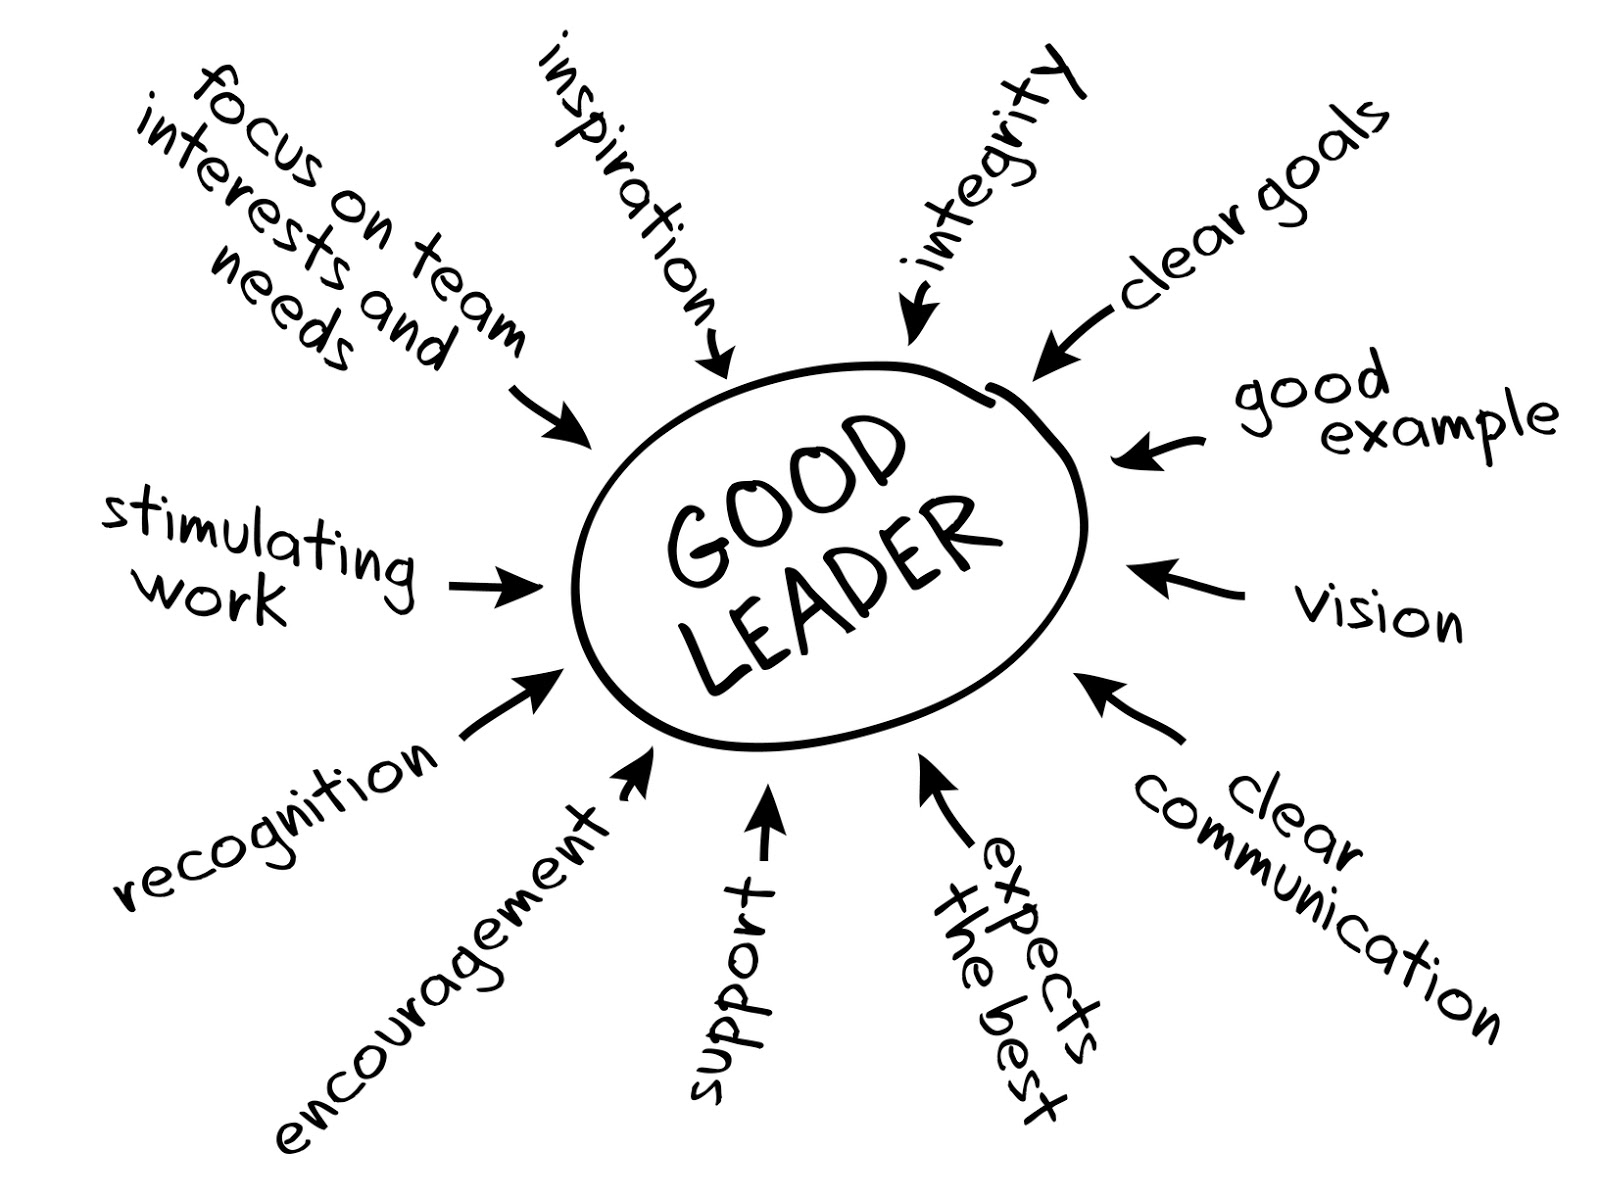 CallCenter Weekly: What Makes You a Good Leader?